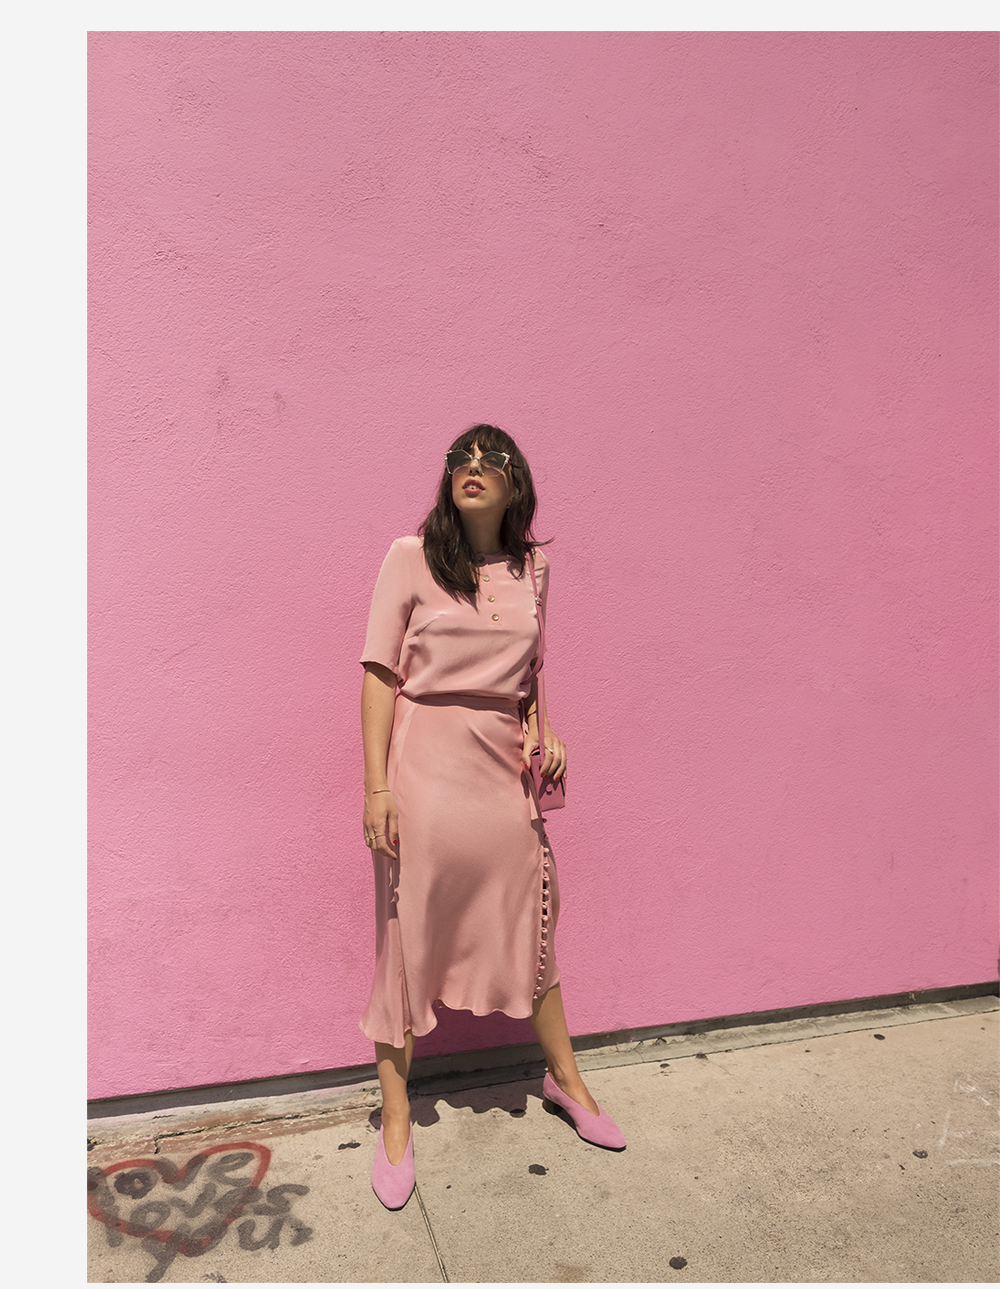 sania claus demina pink outfit look viktoria chan paul smith wall LA los angeles vagabond shoes suede wanda fendi sunglasses_2c